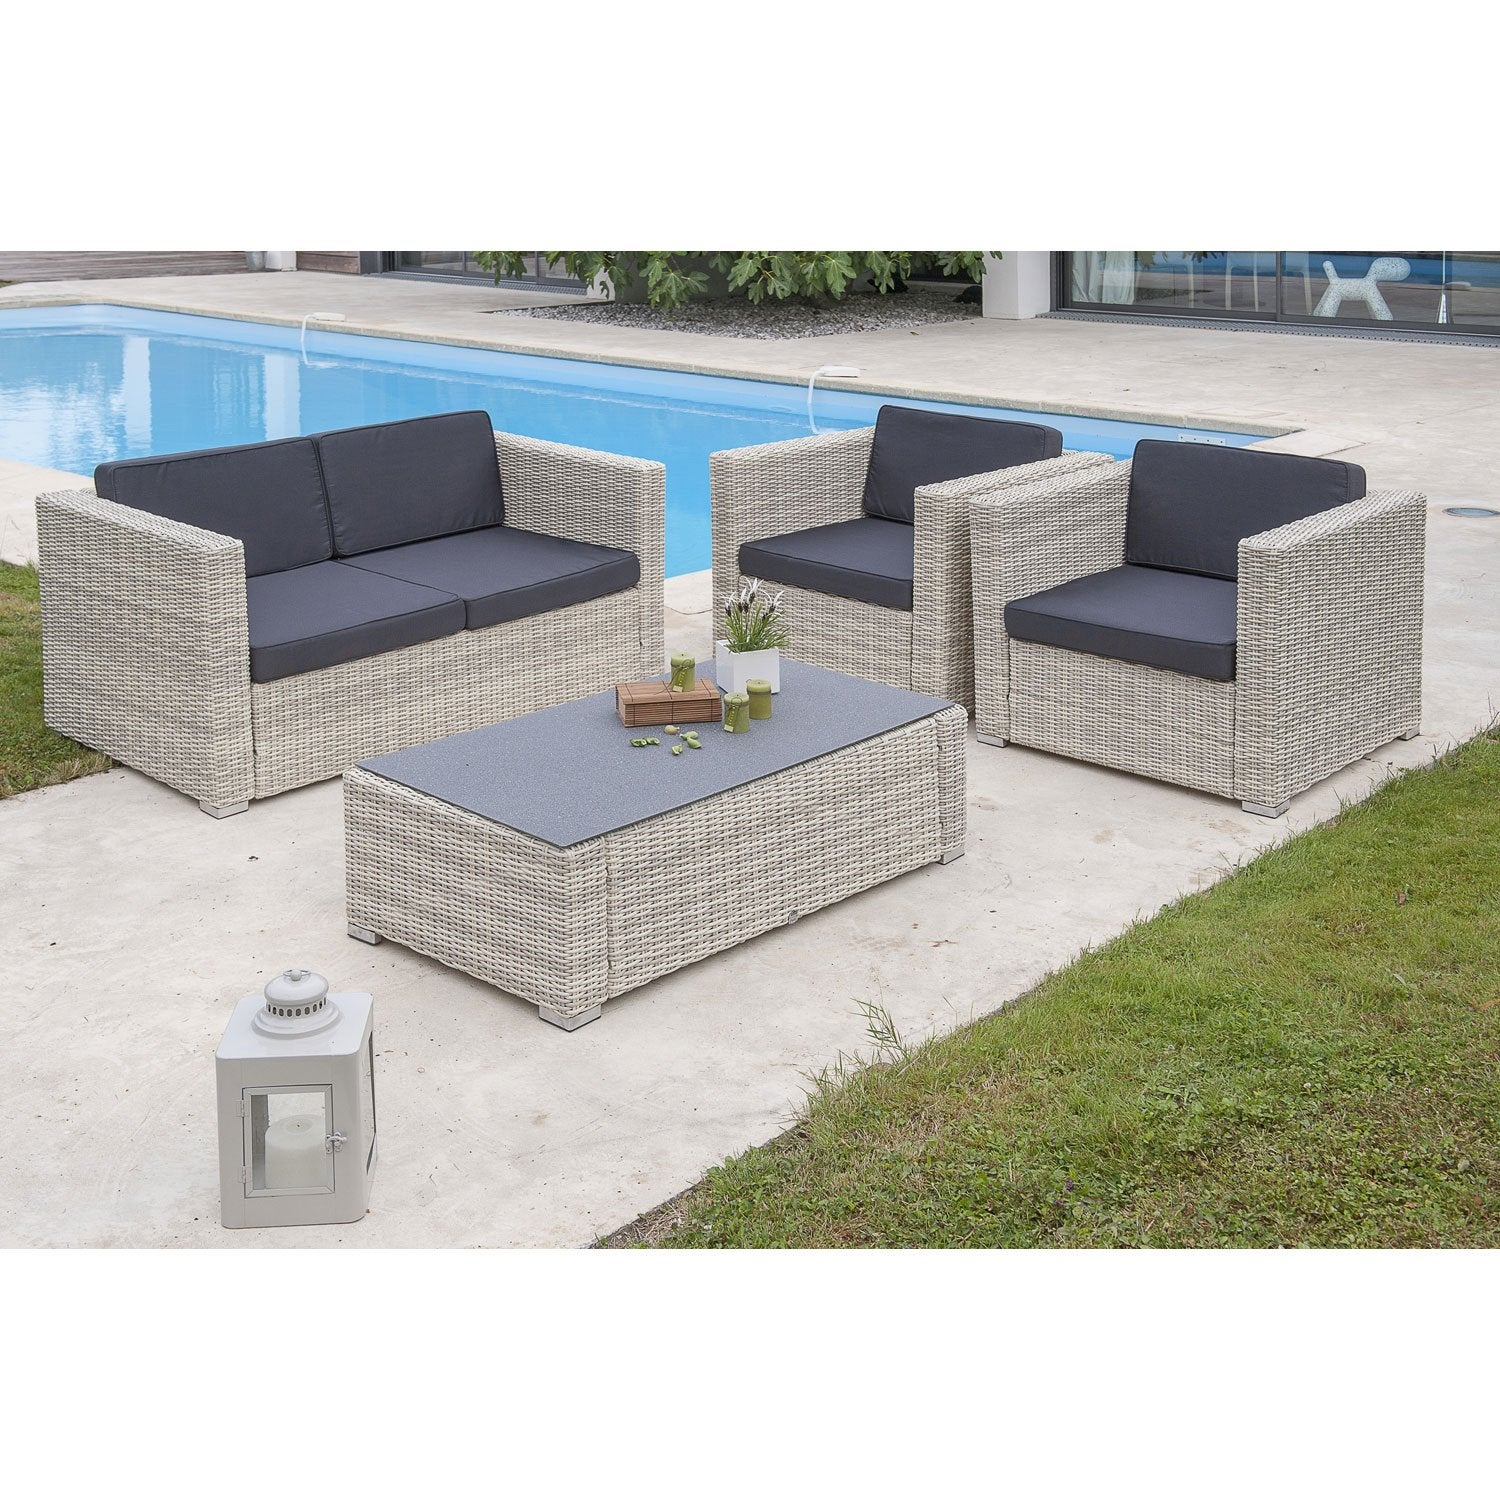 Salon bas de jardin oceane salon r sine tress e blanc table canap 2 fauteuils leroy merlin - Leroy merlin sombrillas de jardin ...